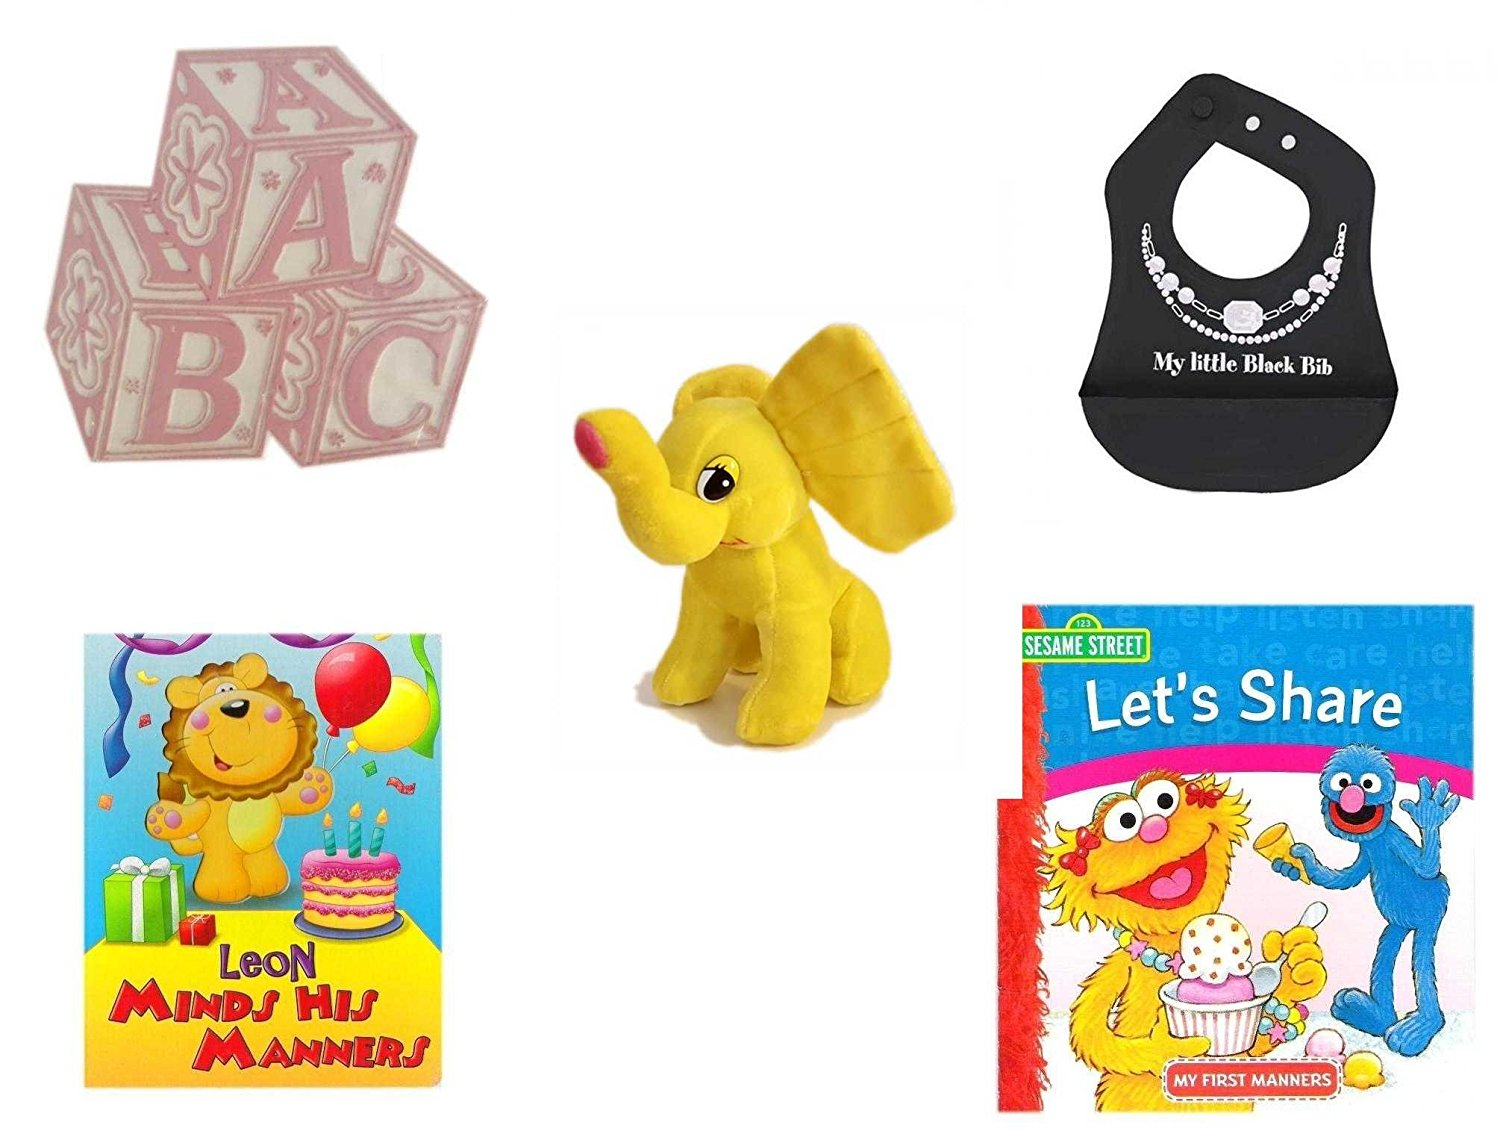 Children's Gift Bundle - Ages 0-2 [5 Piece] - ABC Baby Blocks Cake Topper Pink Girl - Ganz Baby Girl's My Little Black Bib Silicone Crumb Catcher - Yellow Elephant Plush - Leon Minds His Manners Bo